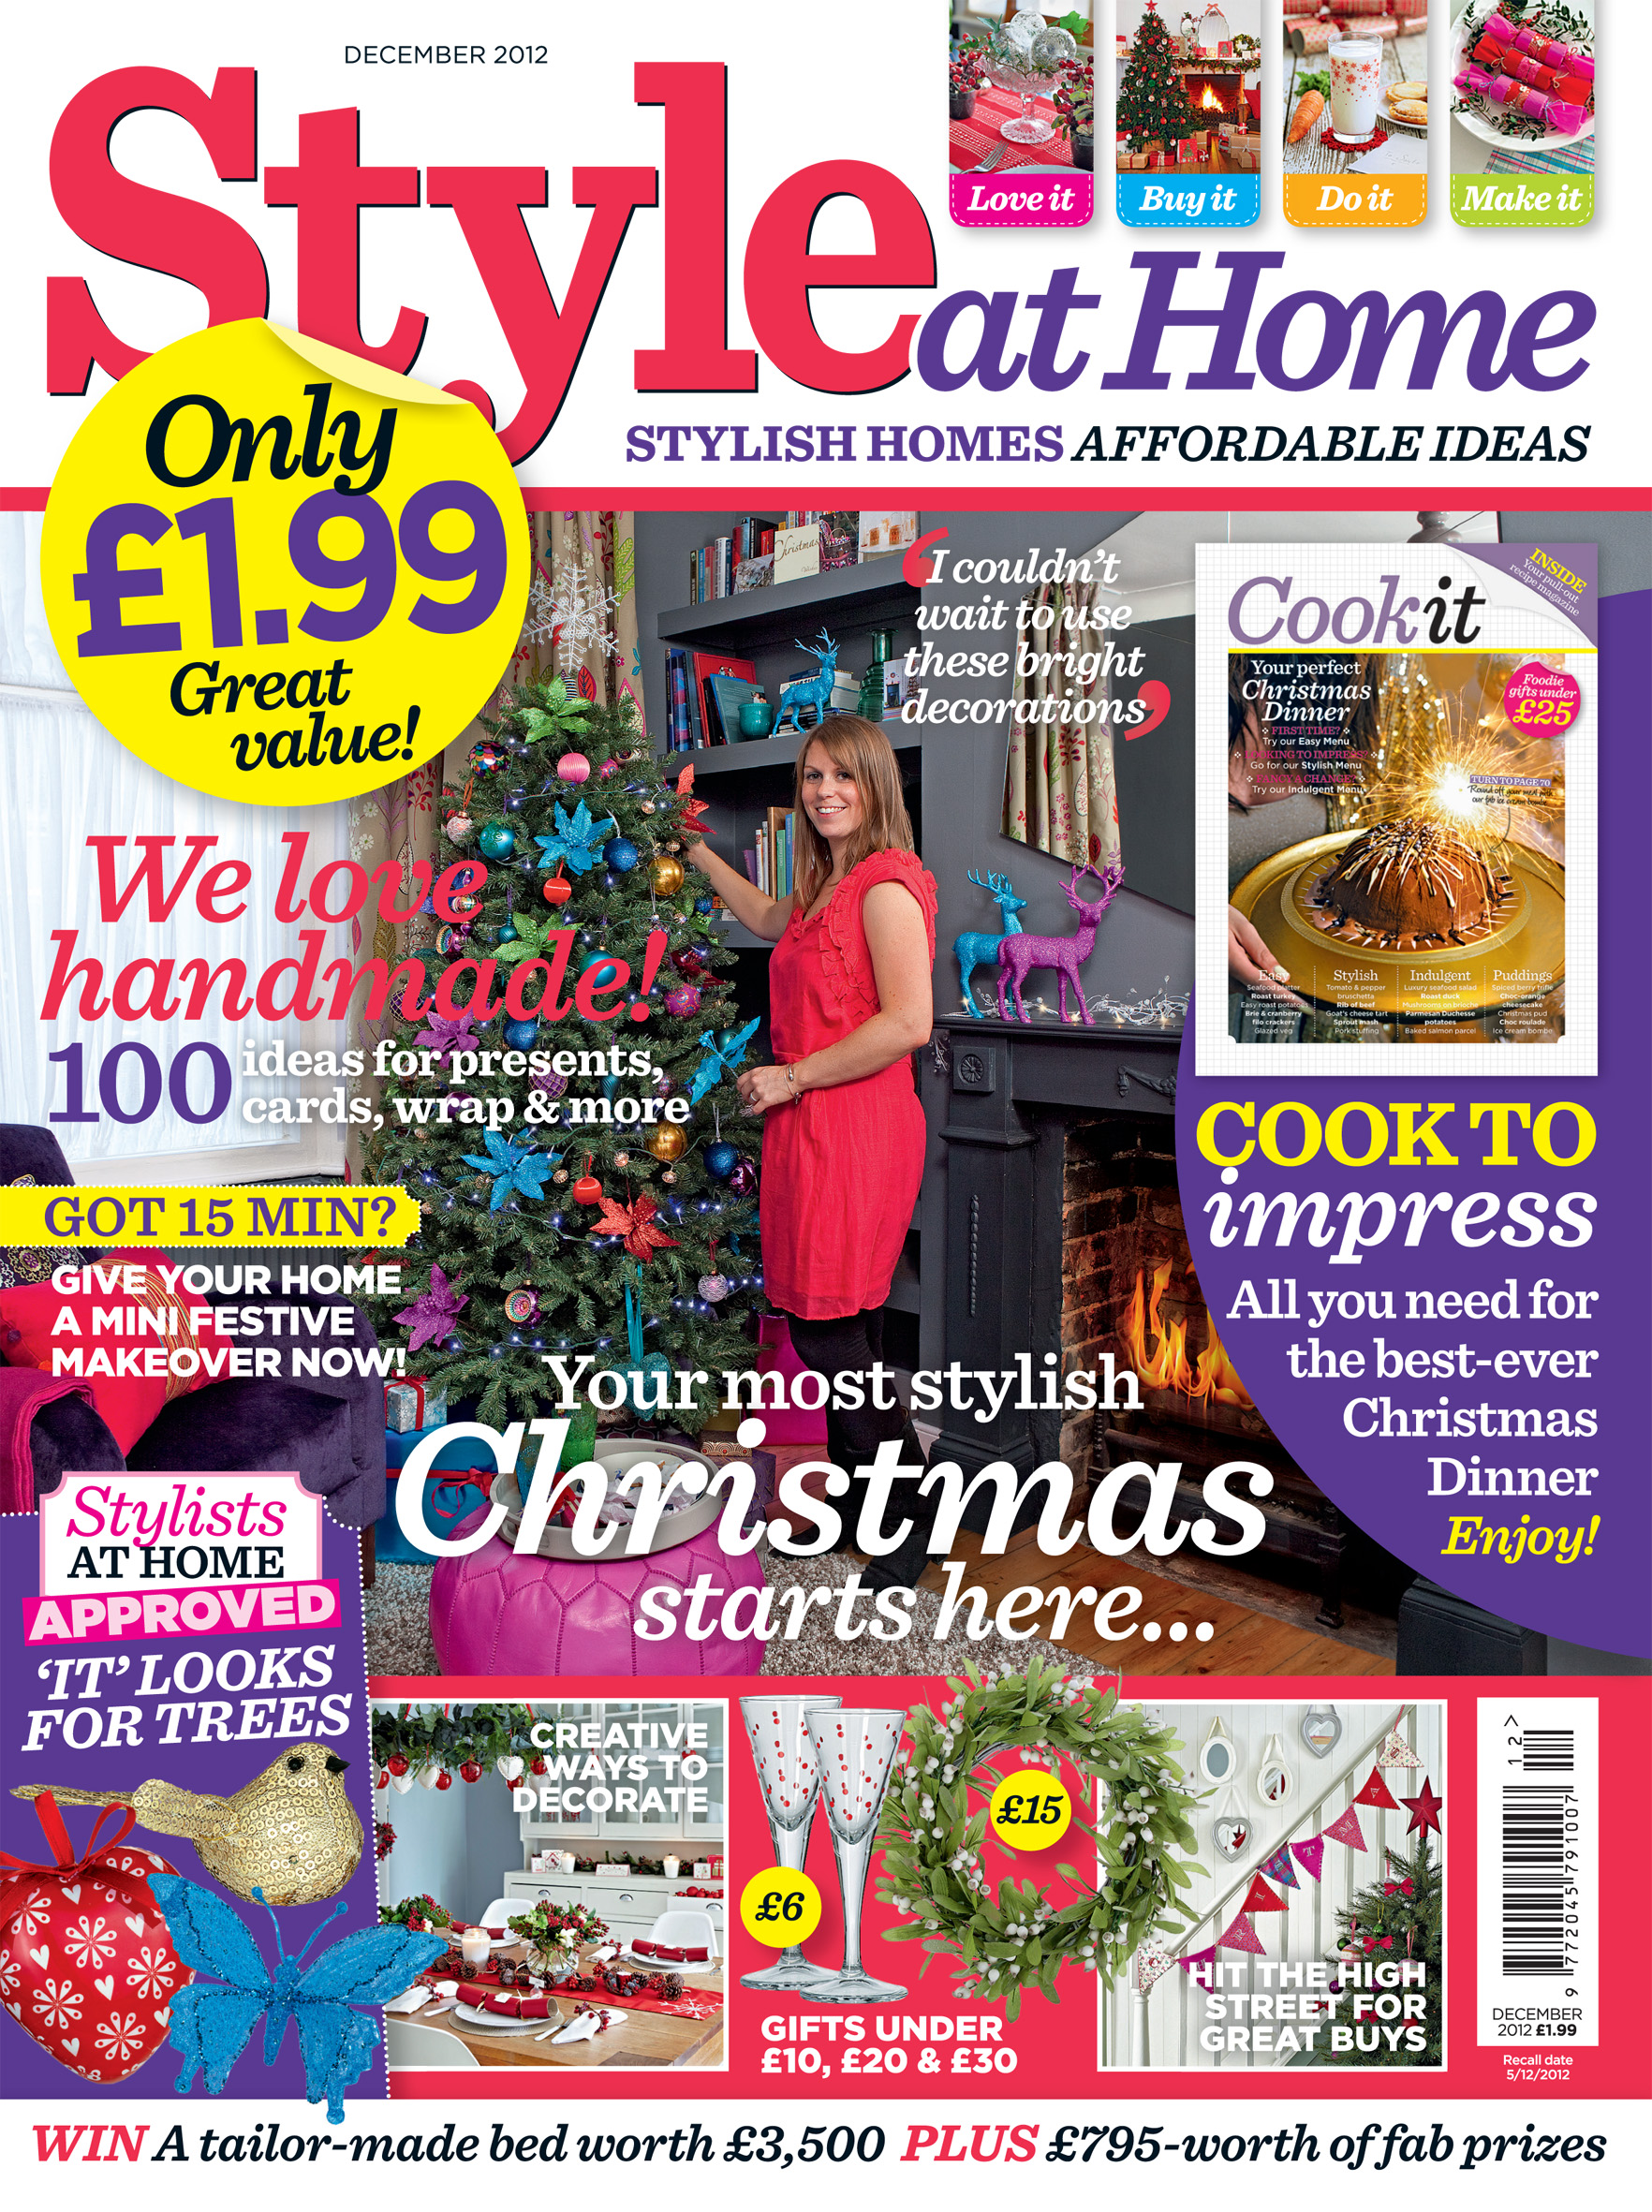 14. Style at Home magazine Christmas Living Room Makeover Cover by Interior Stylist Joanna Thornhill.jpg